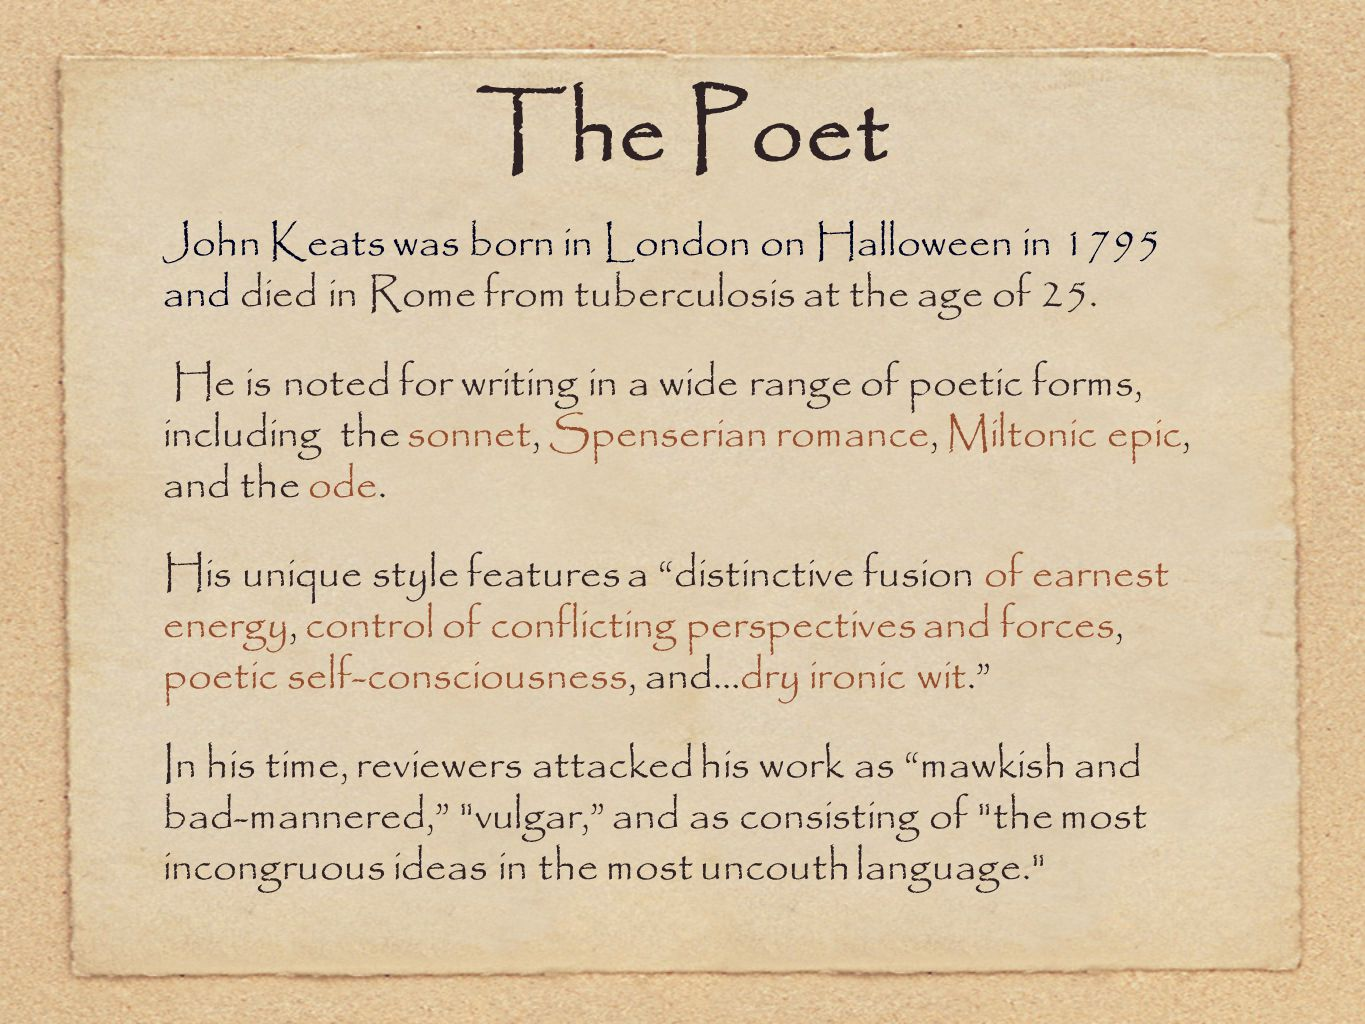 The Poet John Keats was born in London on Halloween in 1795 and died in Rome from tuberculosis at the age of 25.